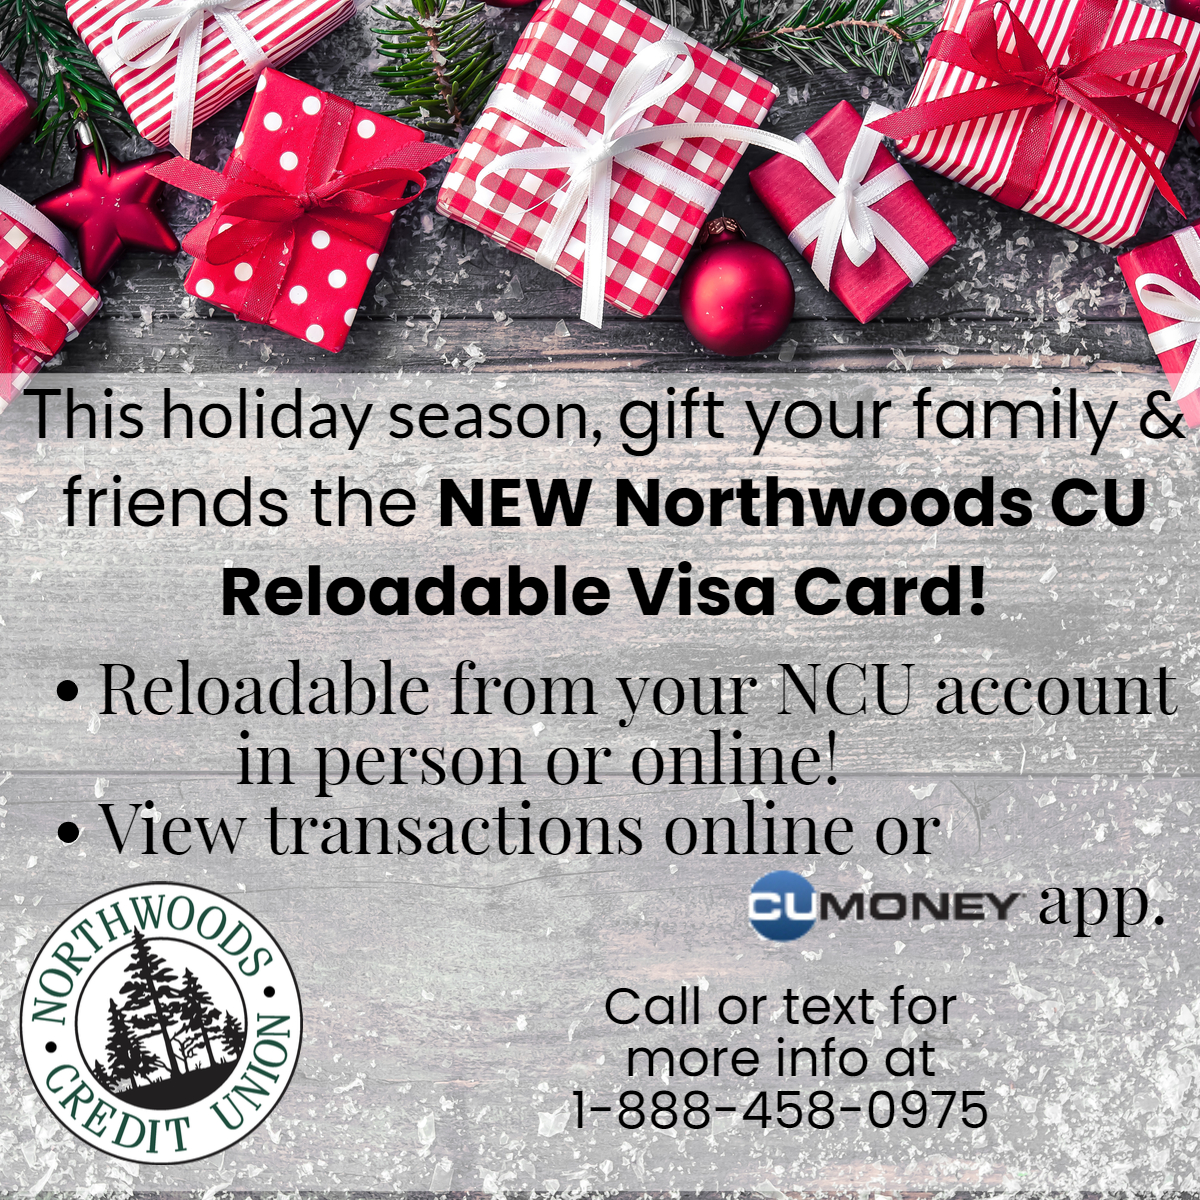 This holiday season, gift your family and friends the NEW Northwoods CU Reloadable Visa Gift Card! Reloadable from your NCU account in person or online! View transactions online or on the CUmoney app! Call or test us for more info at 1-888-458-0975.